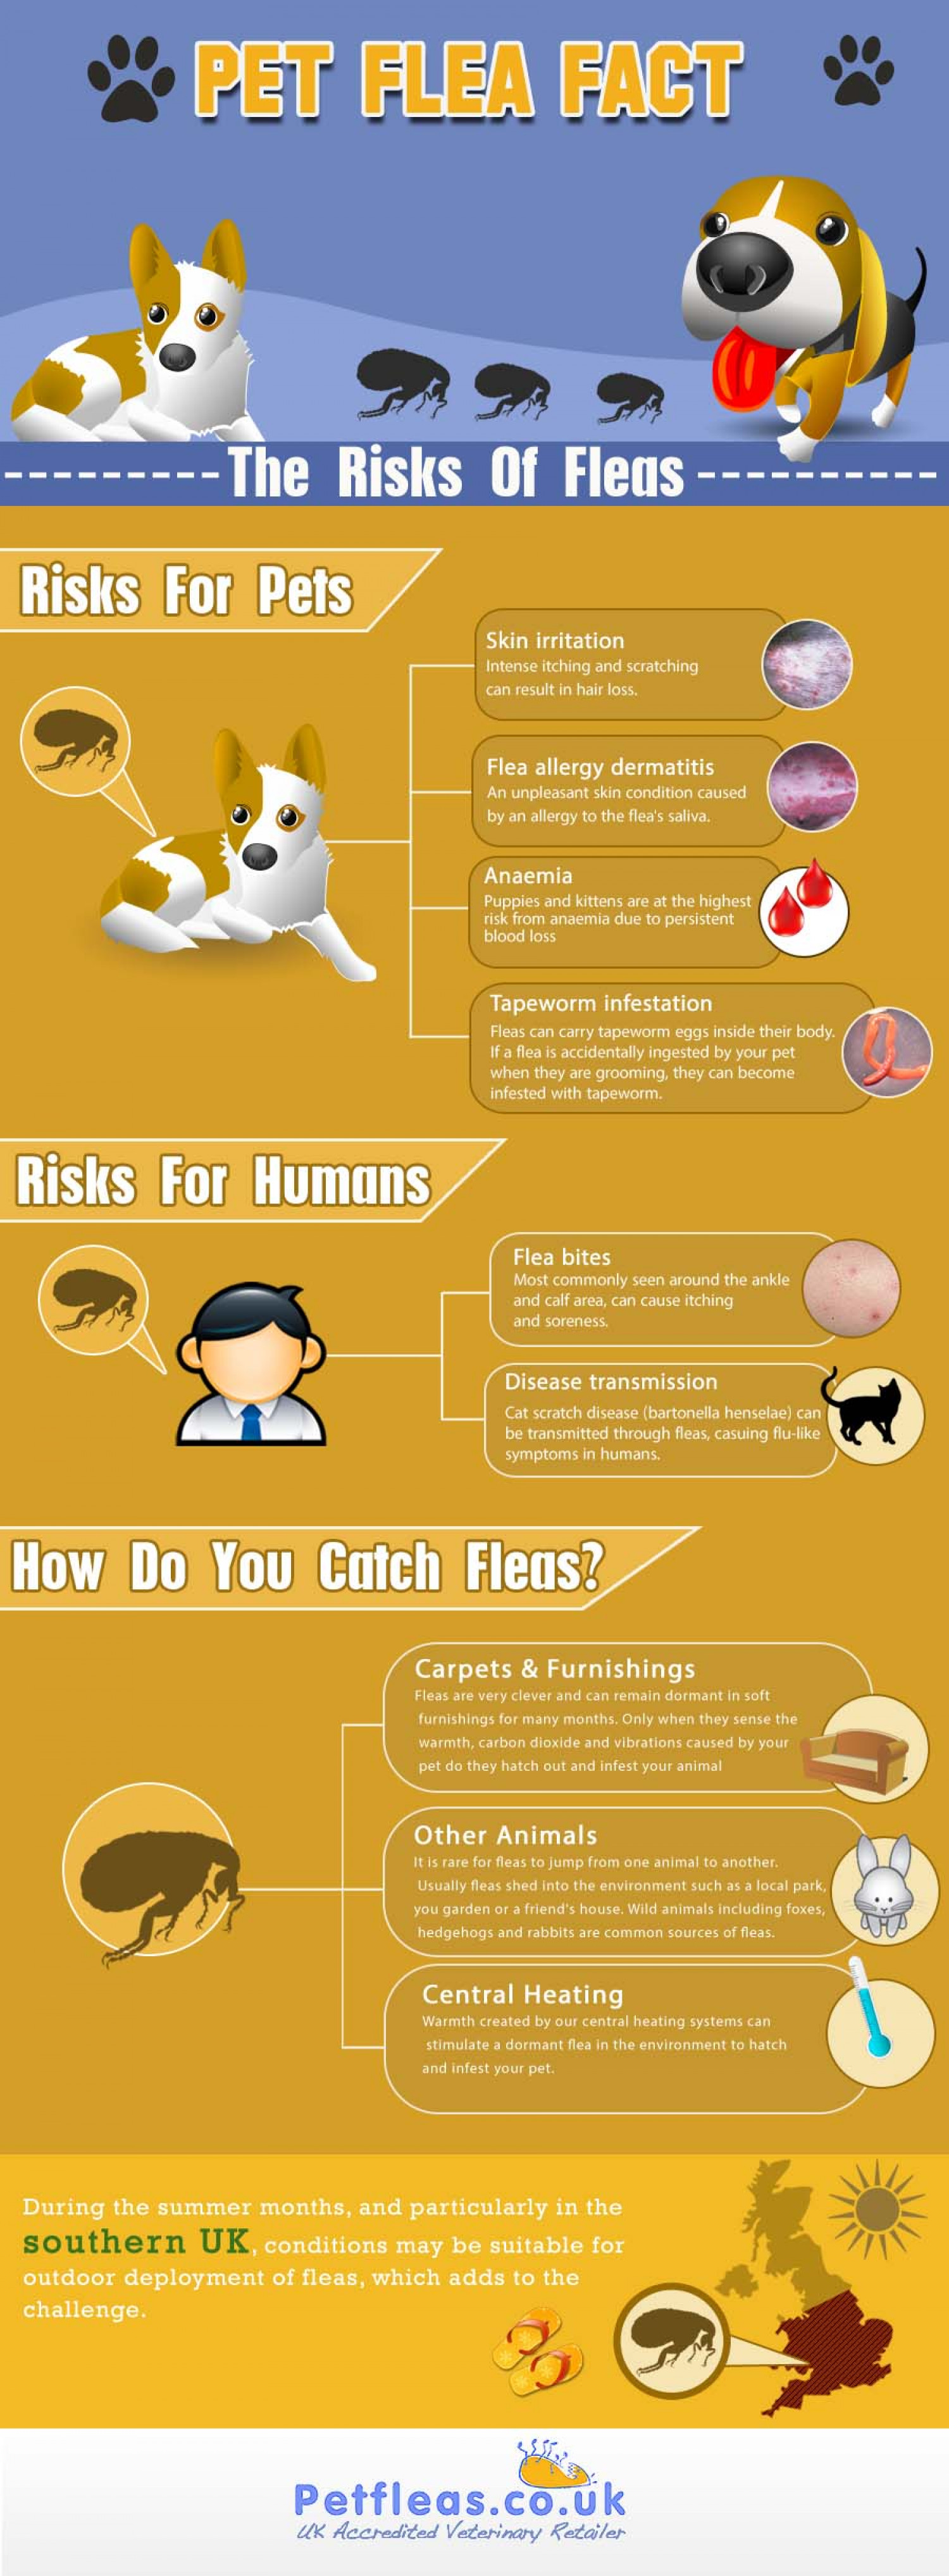 Pet Flea Fact File – The Risks of Fleas Infographic